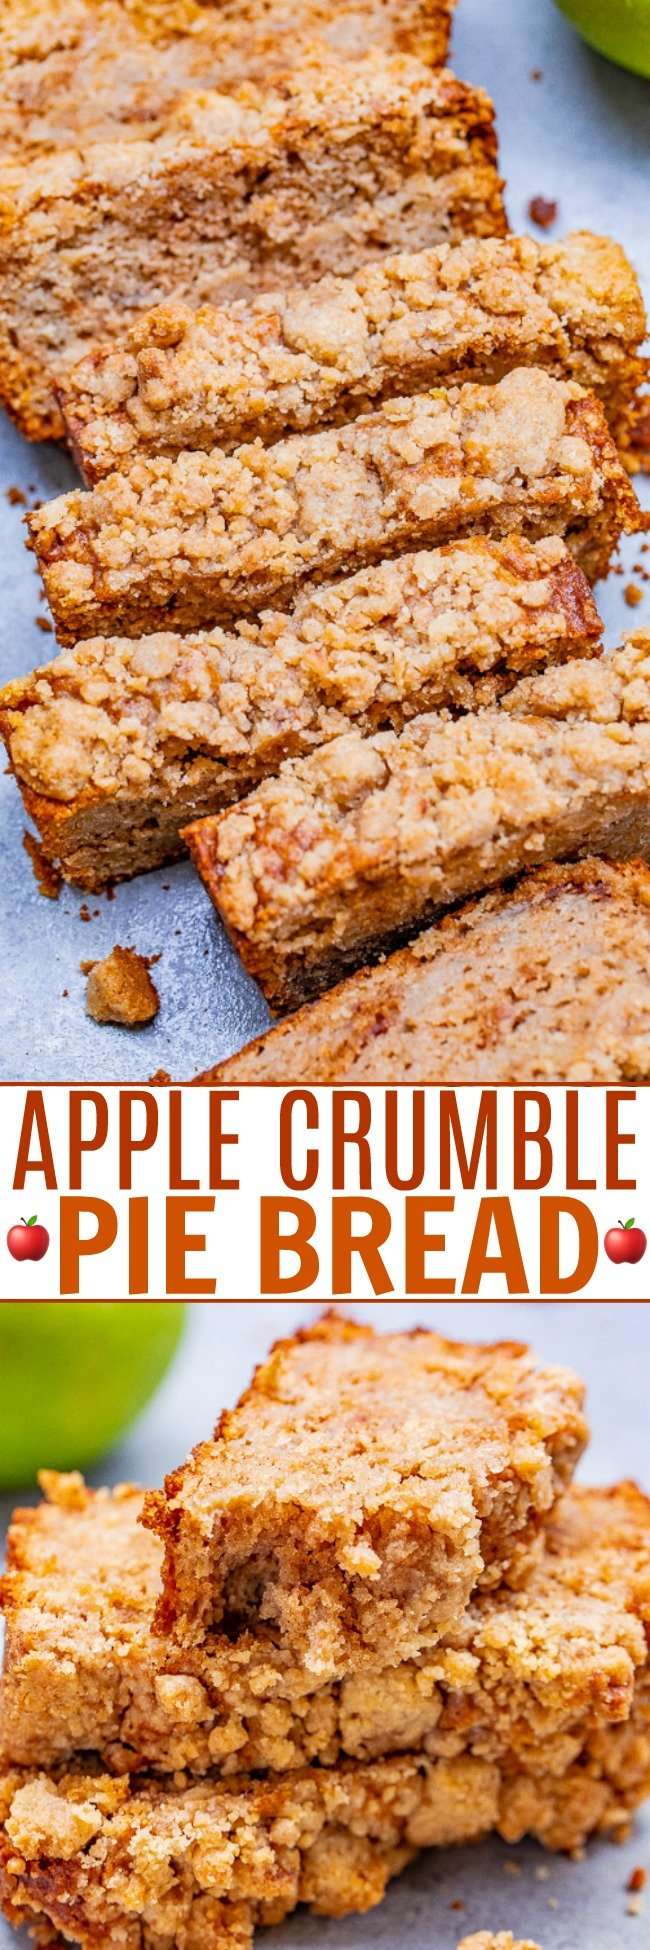 Apple Crumble Pie Bread - If you like apple crumble pie, you're going to love this EASY no-mixer apple pie bread!! Soft, tender, moist bread with the contrast of the slightly crunchy crumble topping is PERFECT! Great for breakfast, brunch, snacks, or dessert!!